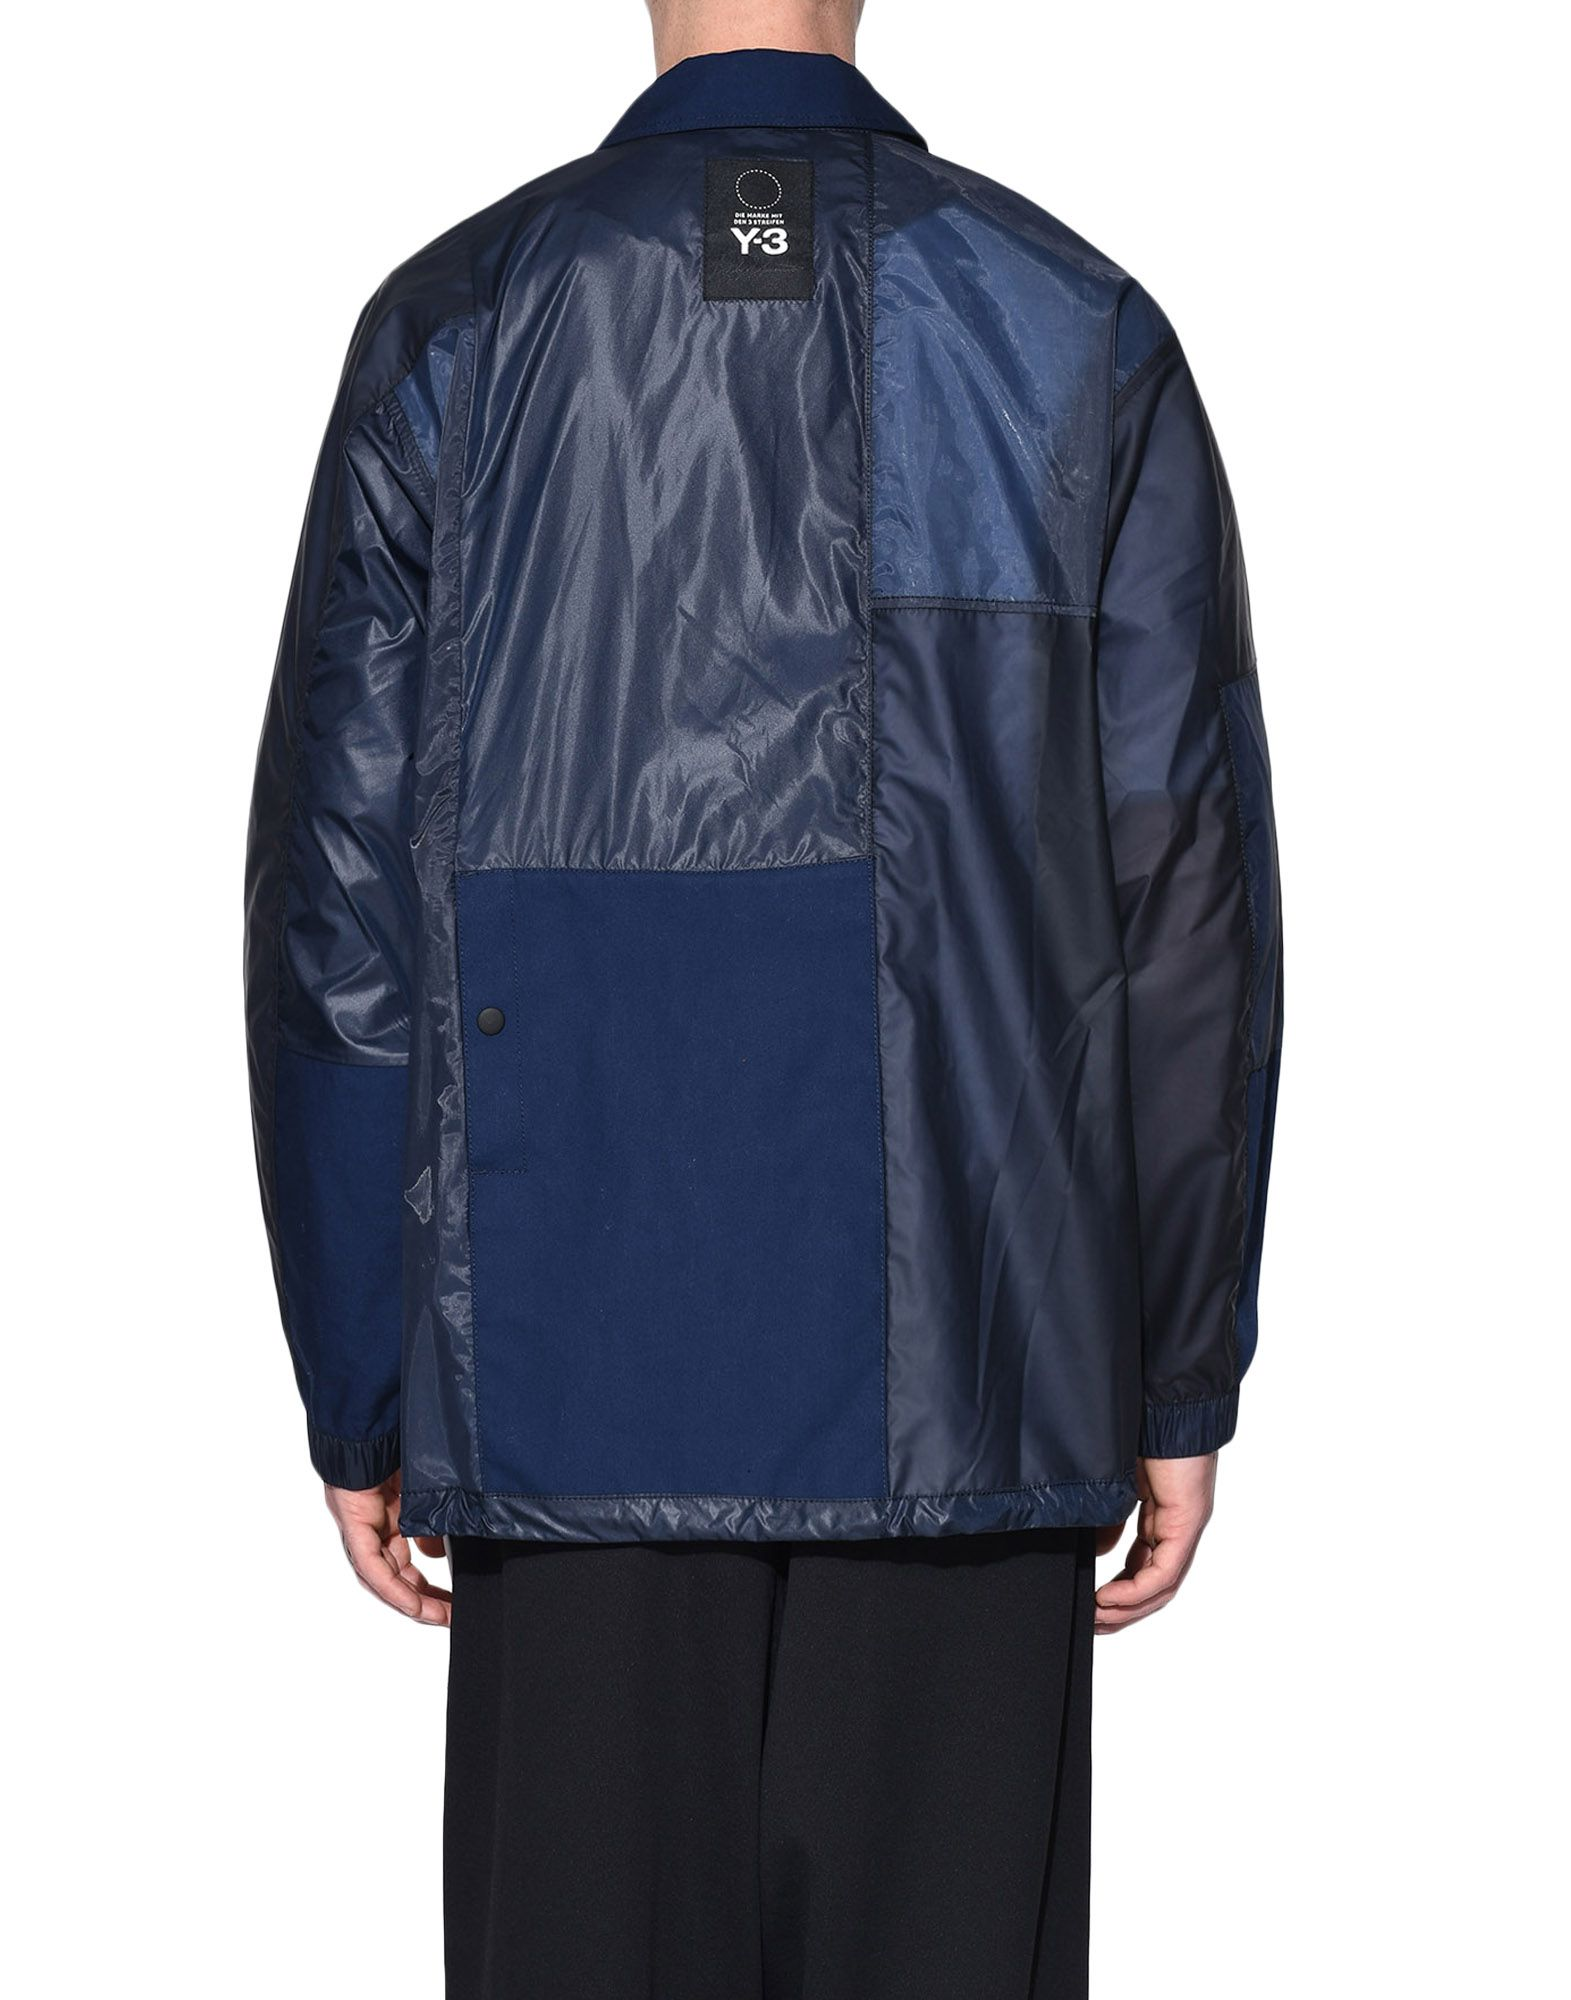 Y-3 Y-3 Patchwork Coach Jacket Jacket Man d